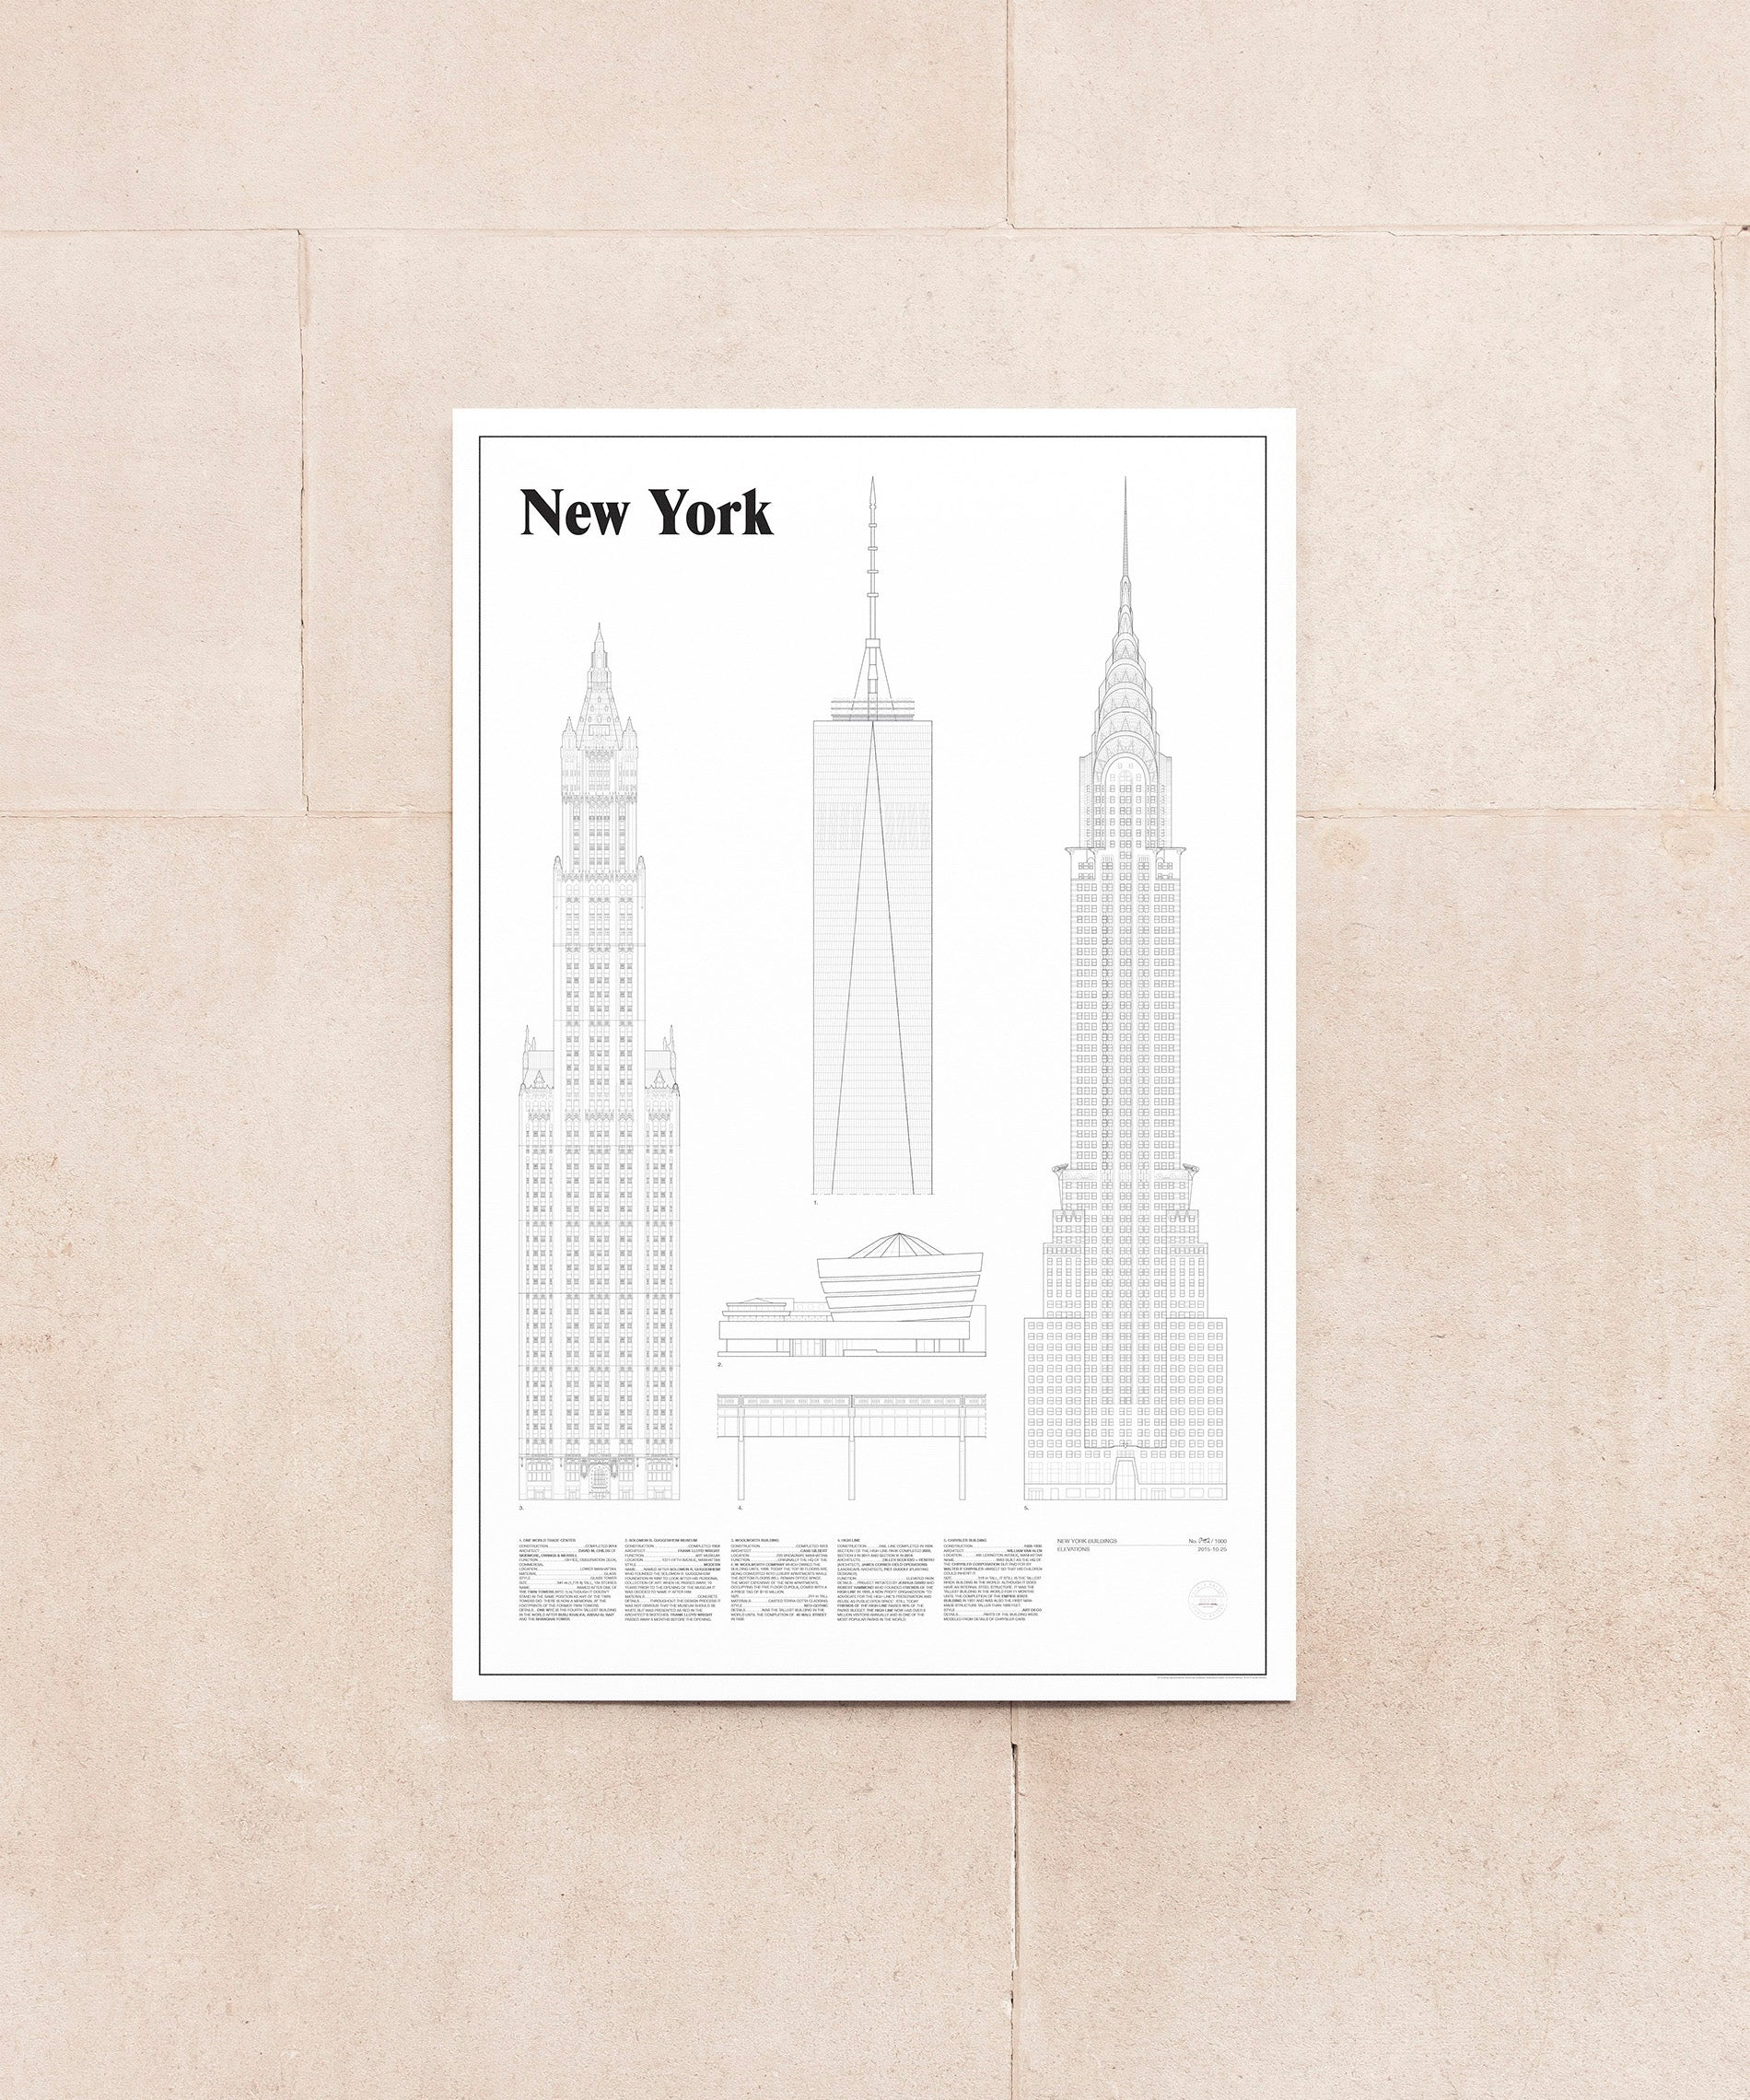 New York Elevations